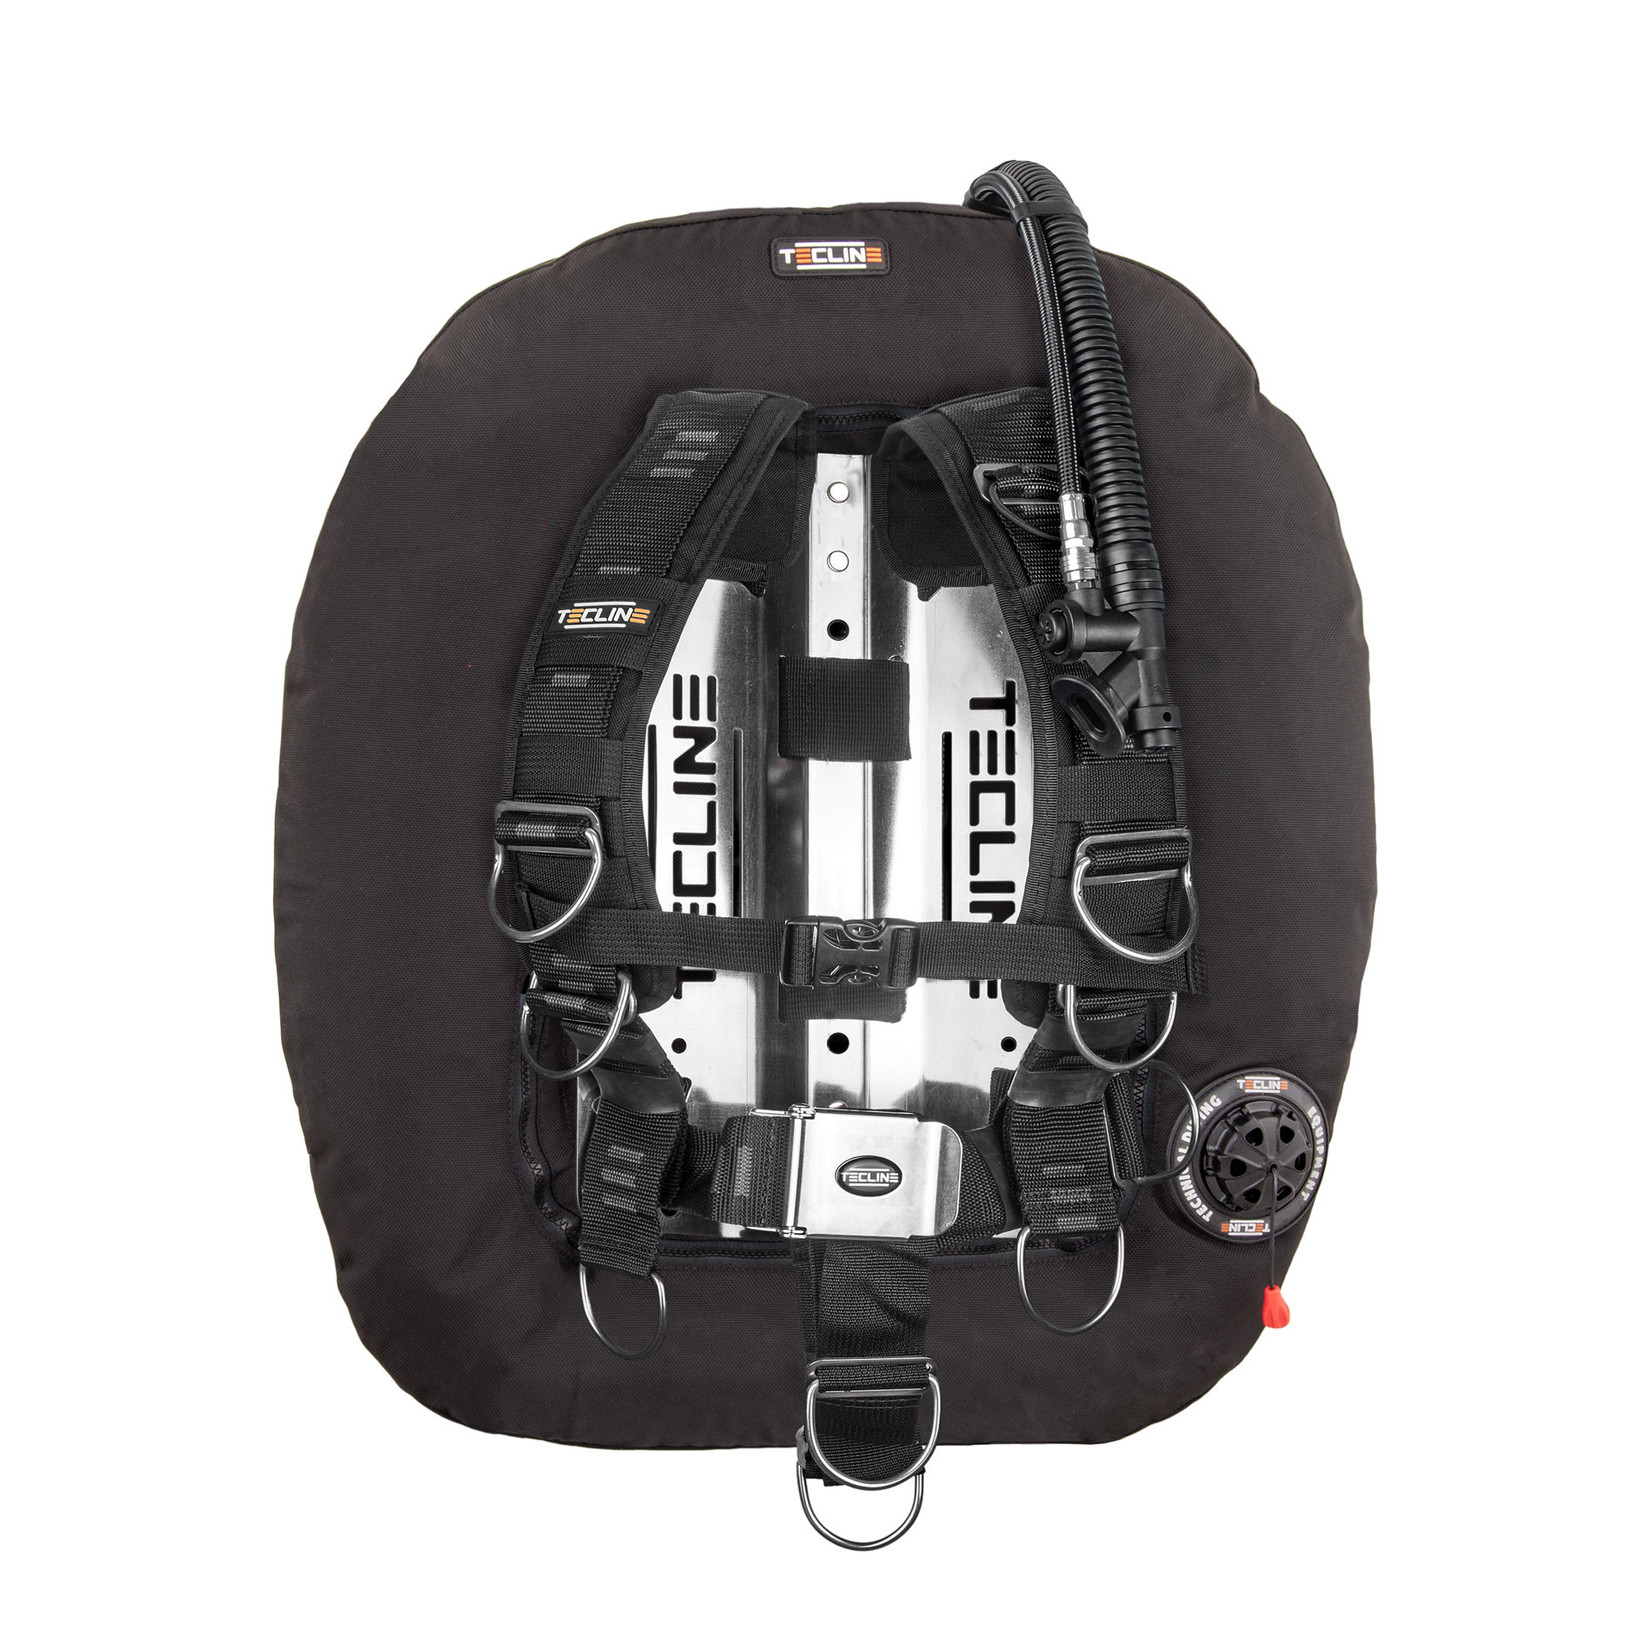 Tecline Donut 22 with Comfort harness & BP